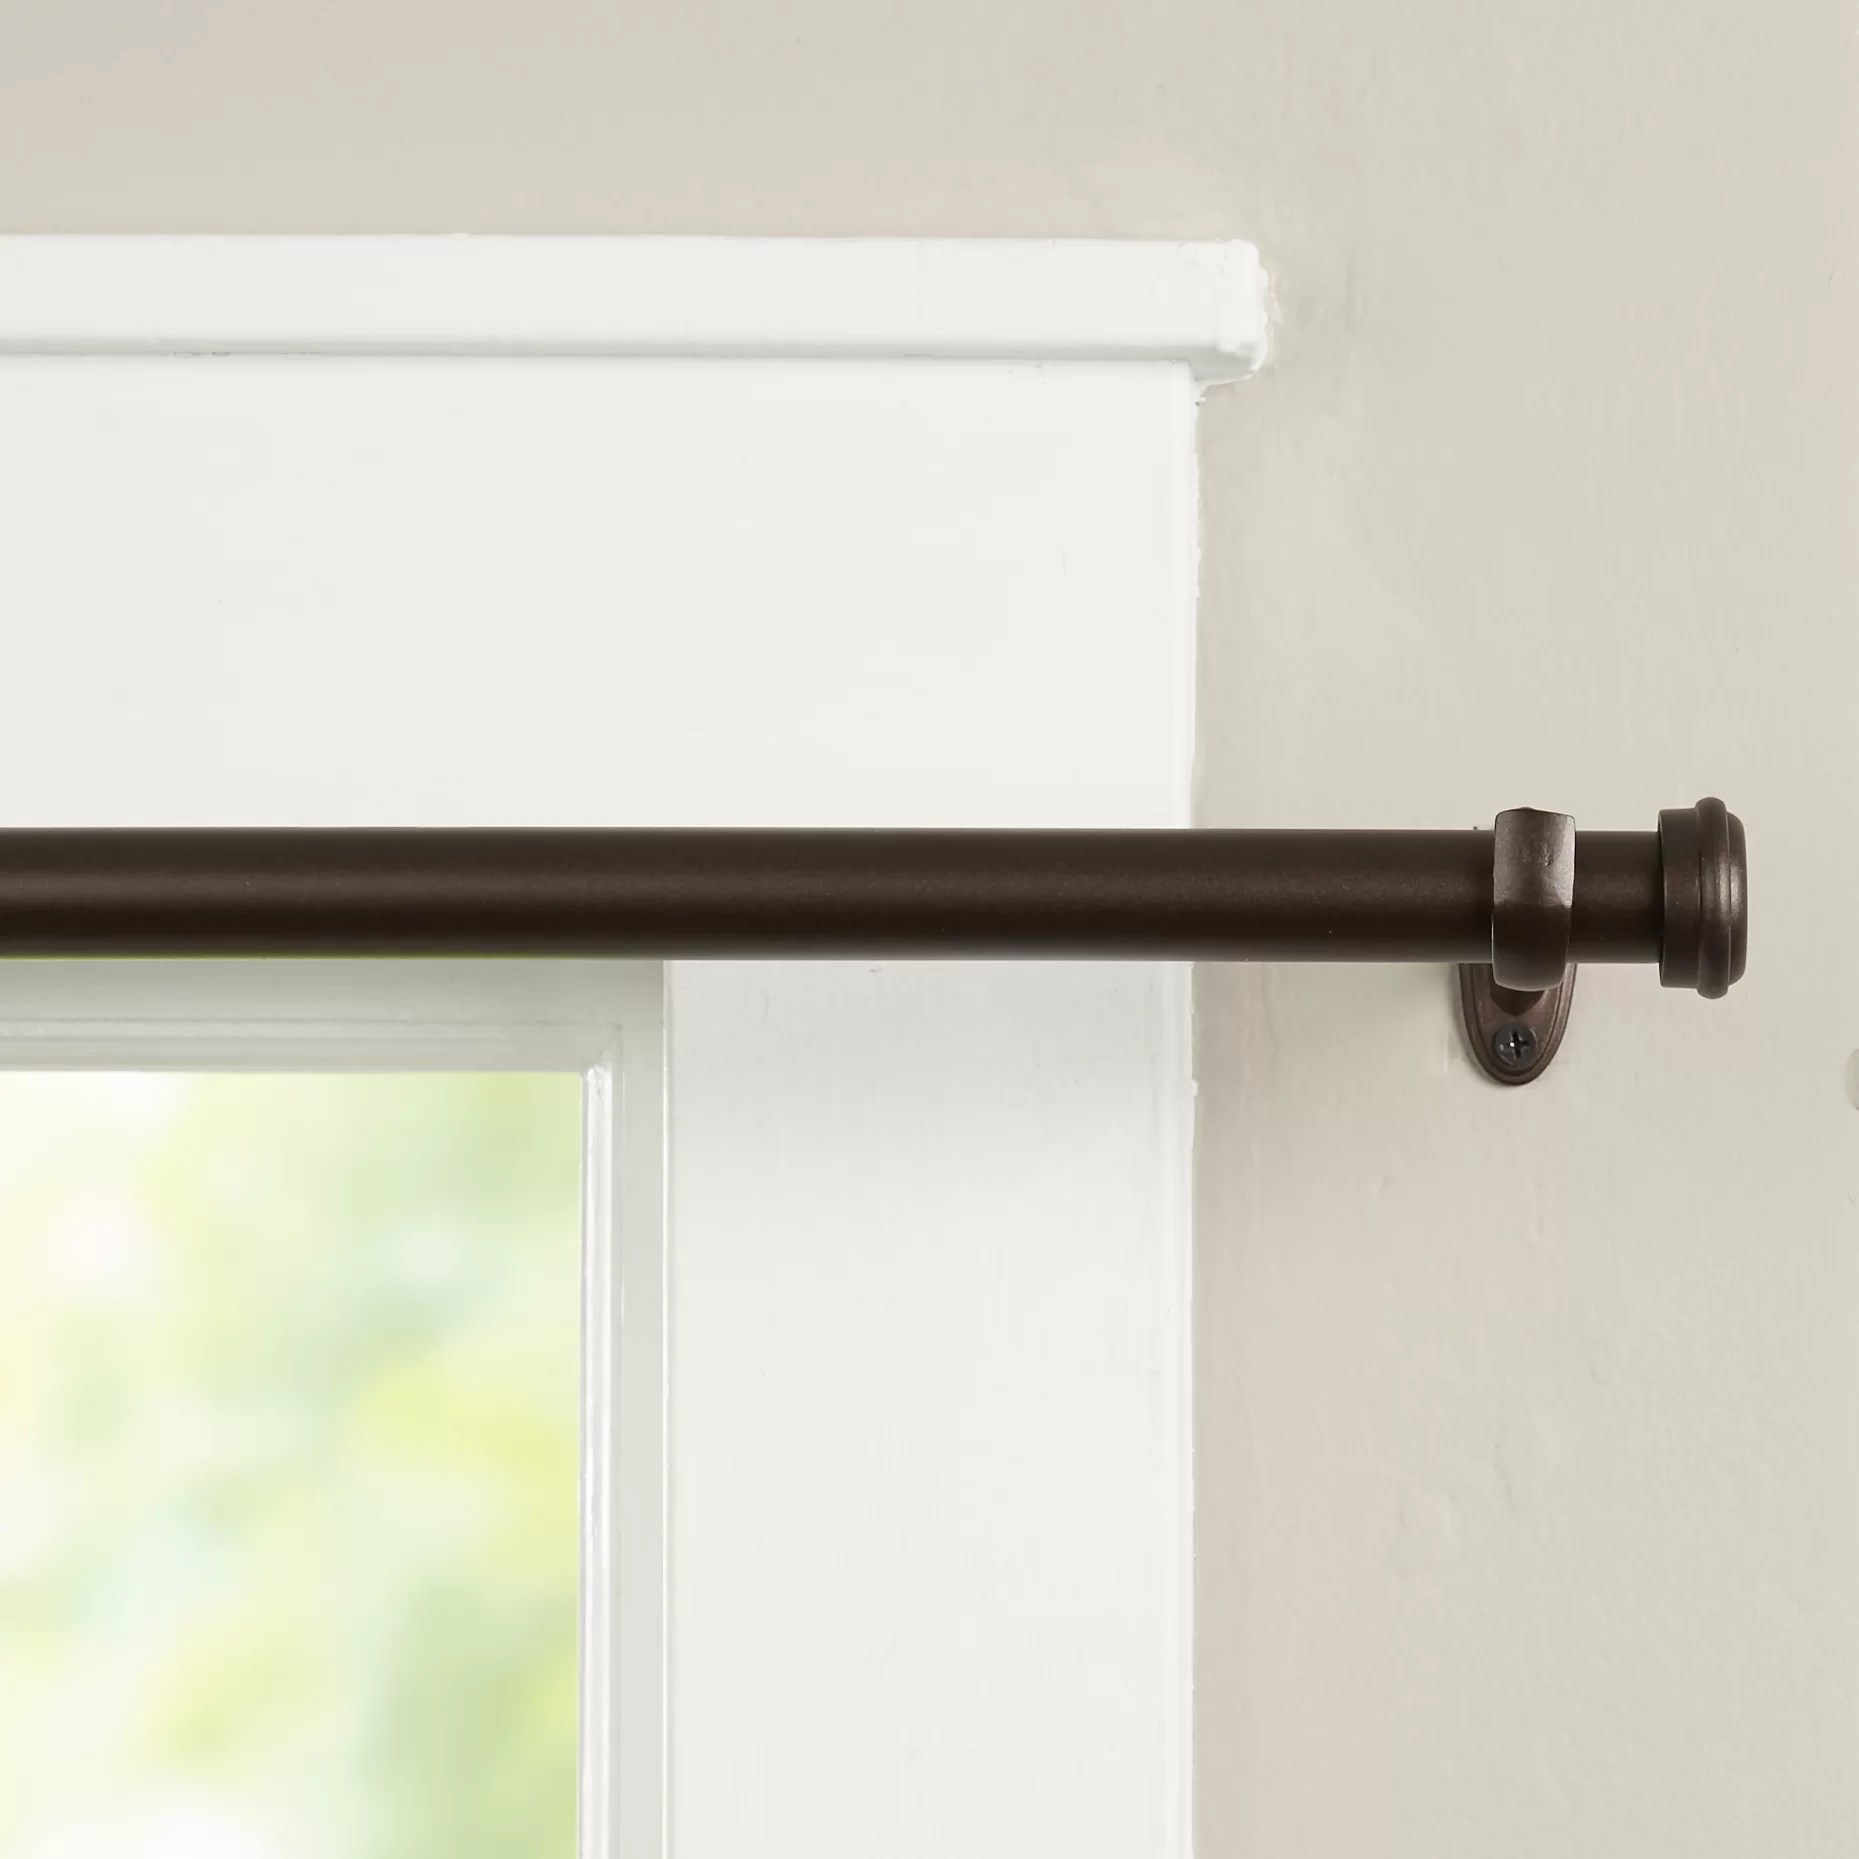 Wayfair Basics Wayfair Basics End Cap Single Curtain Rod  Hardware Set  Reviews  Wayfair